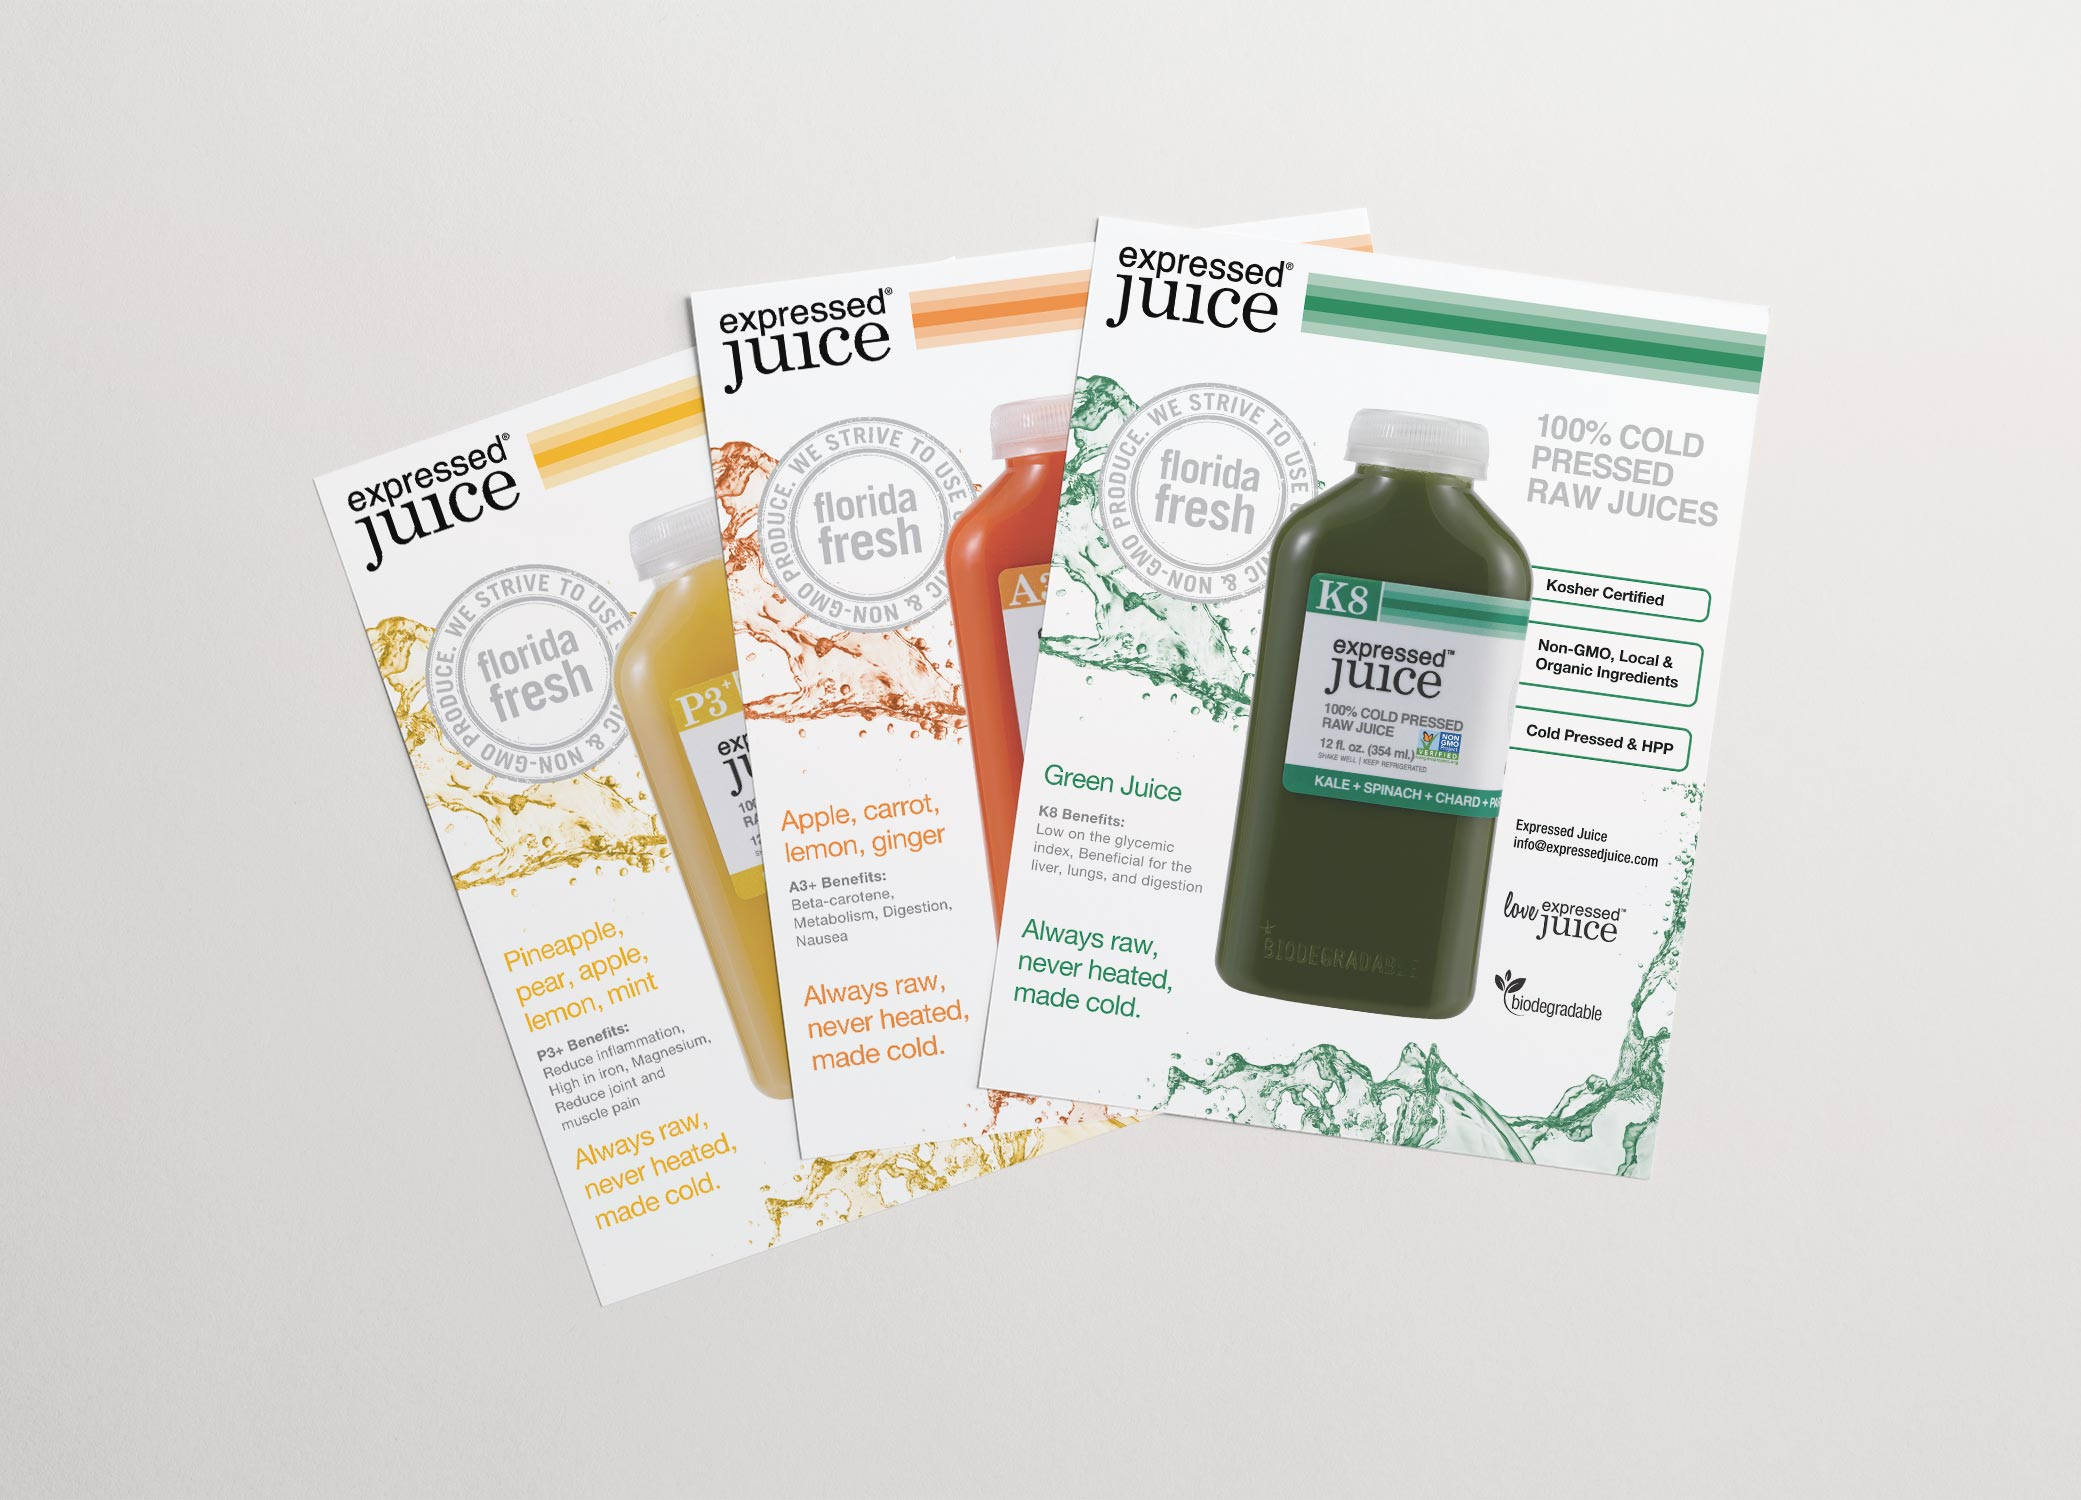 Expressed Juice cruise line flyers providing insight into the brand and offer marketing potential.